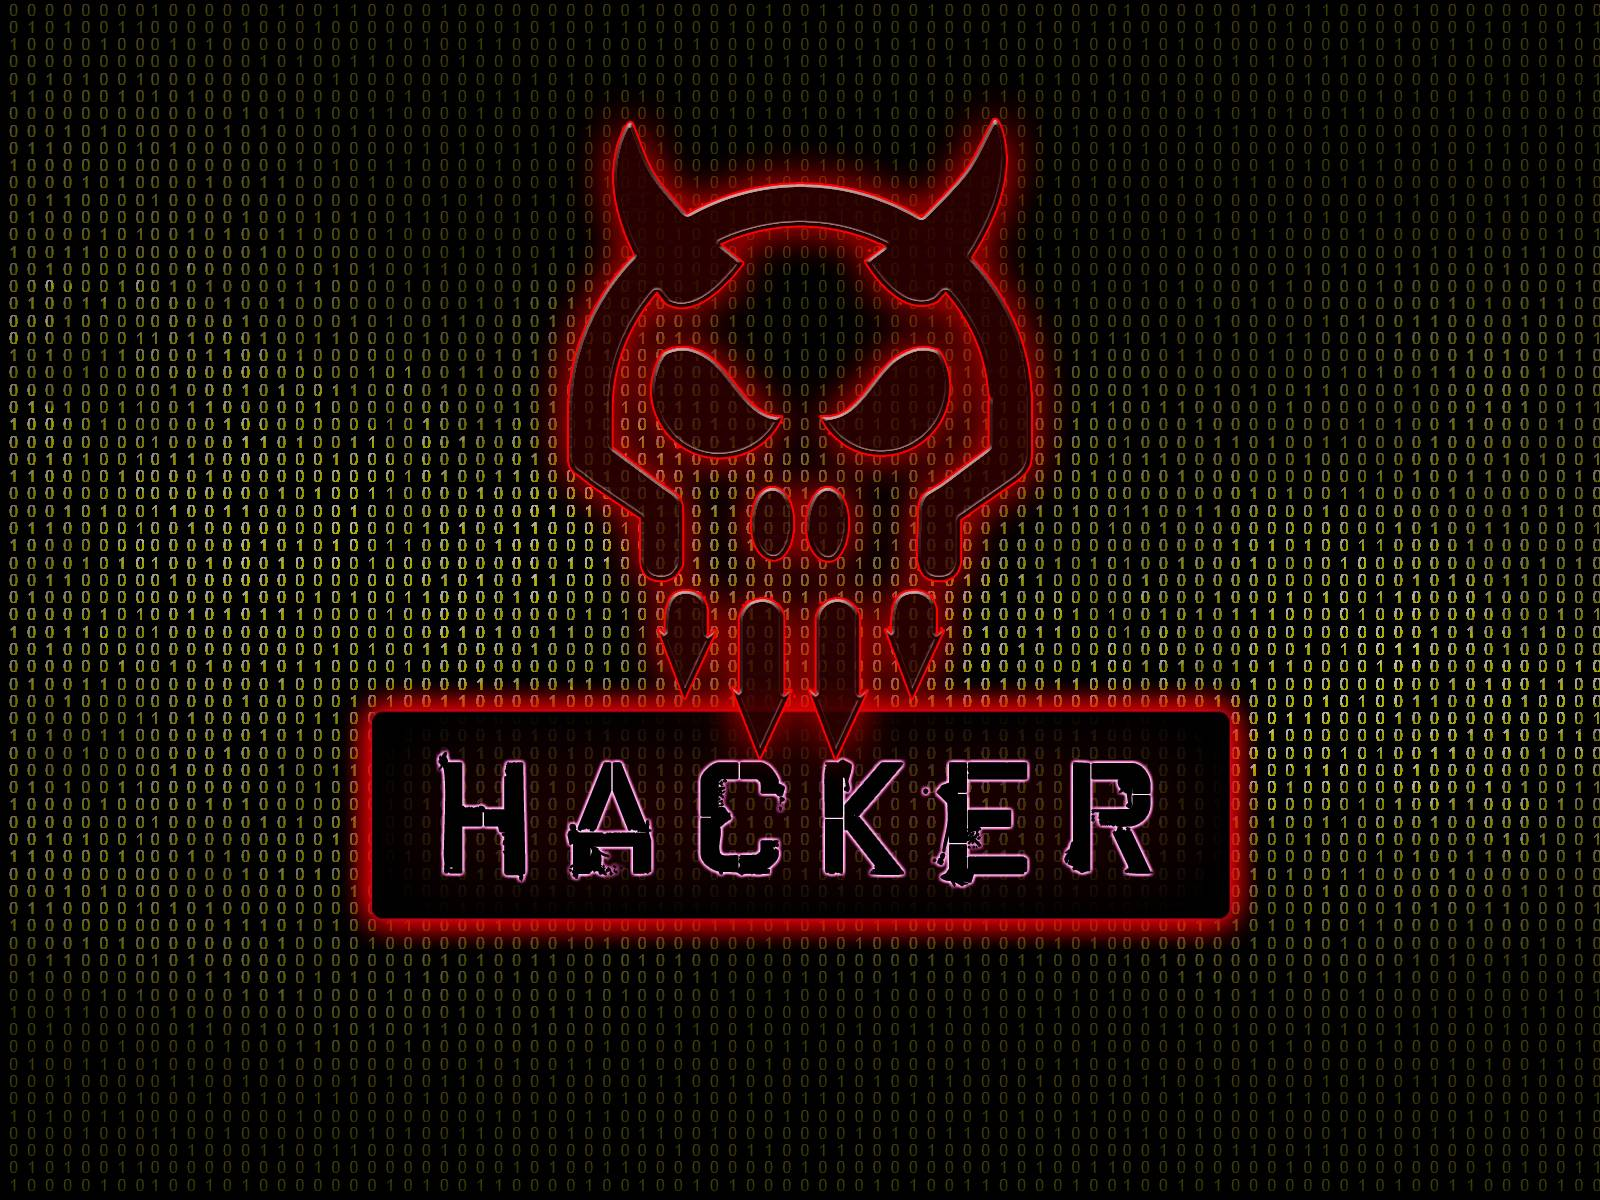 hacking wallpapers desktop - photo #38